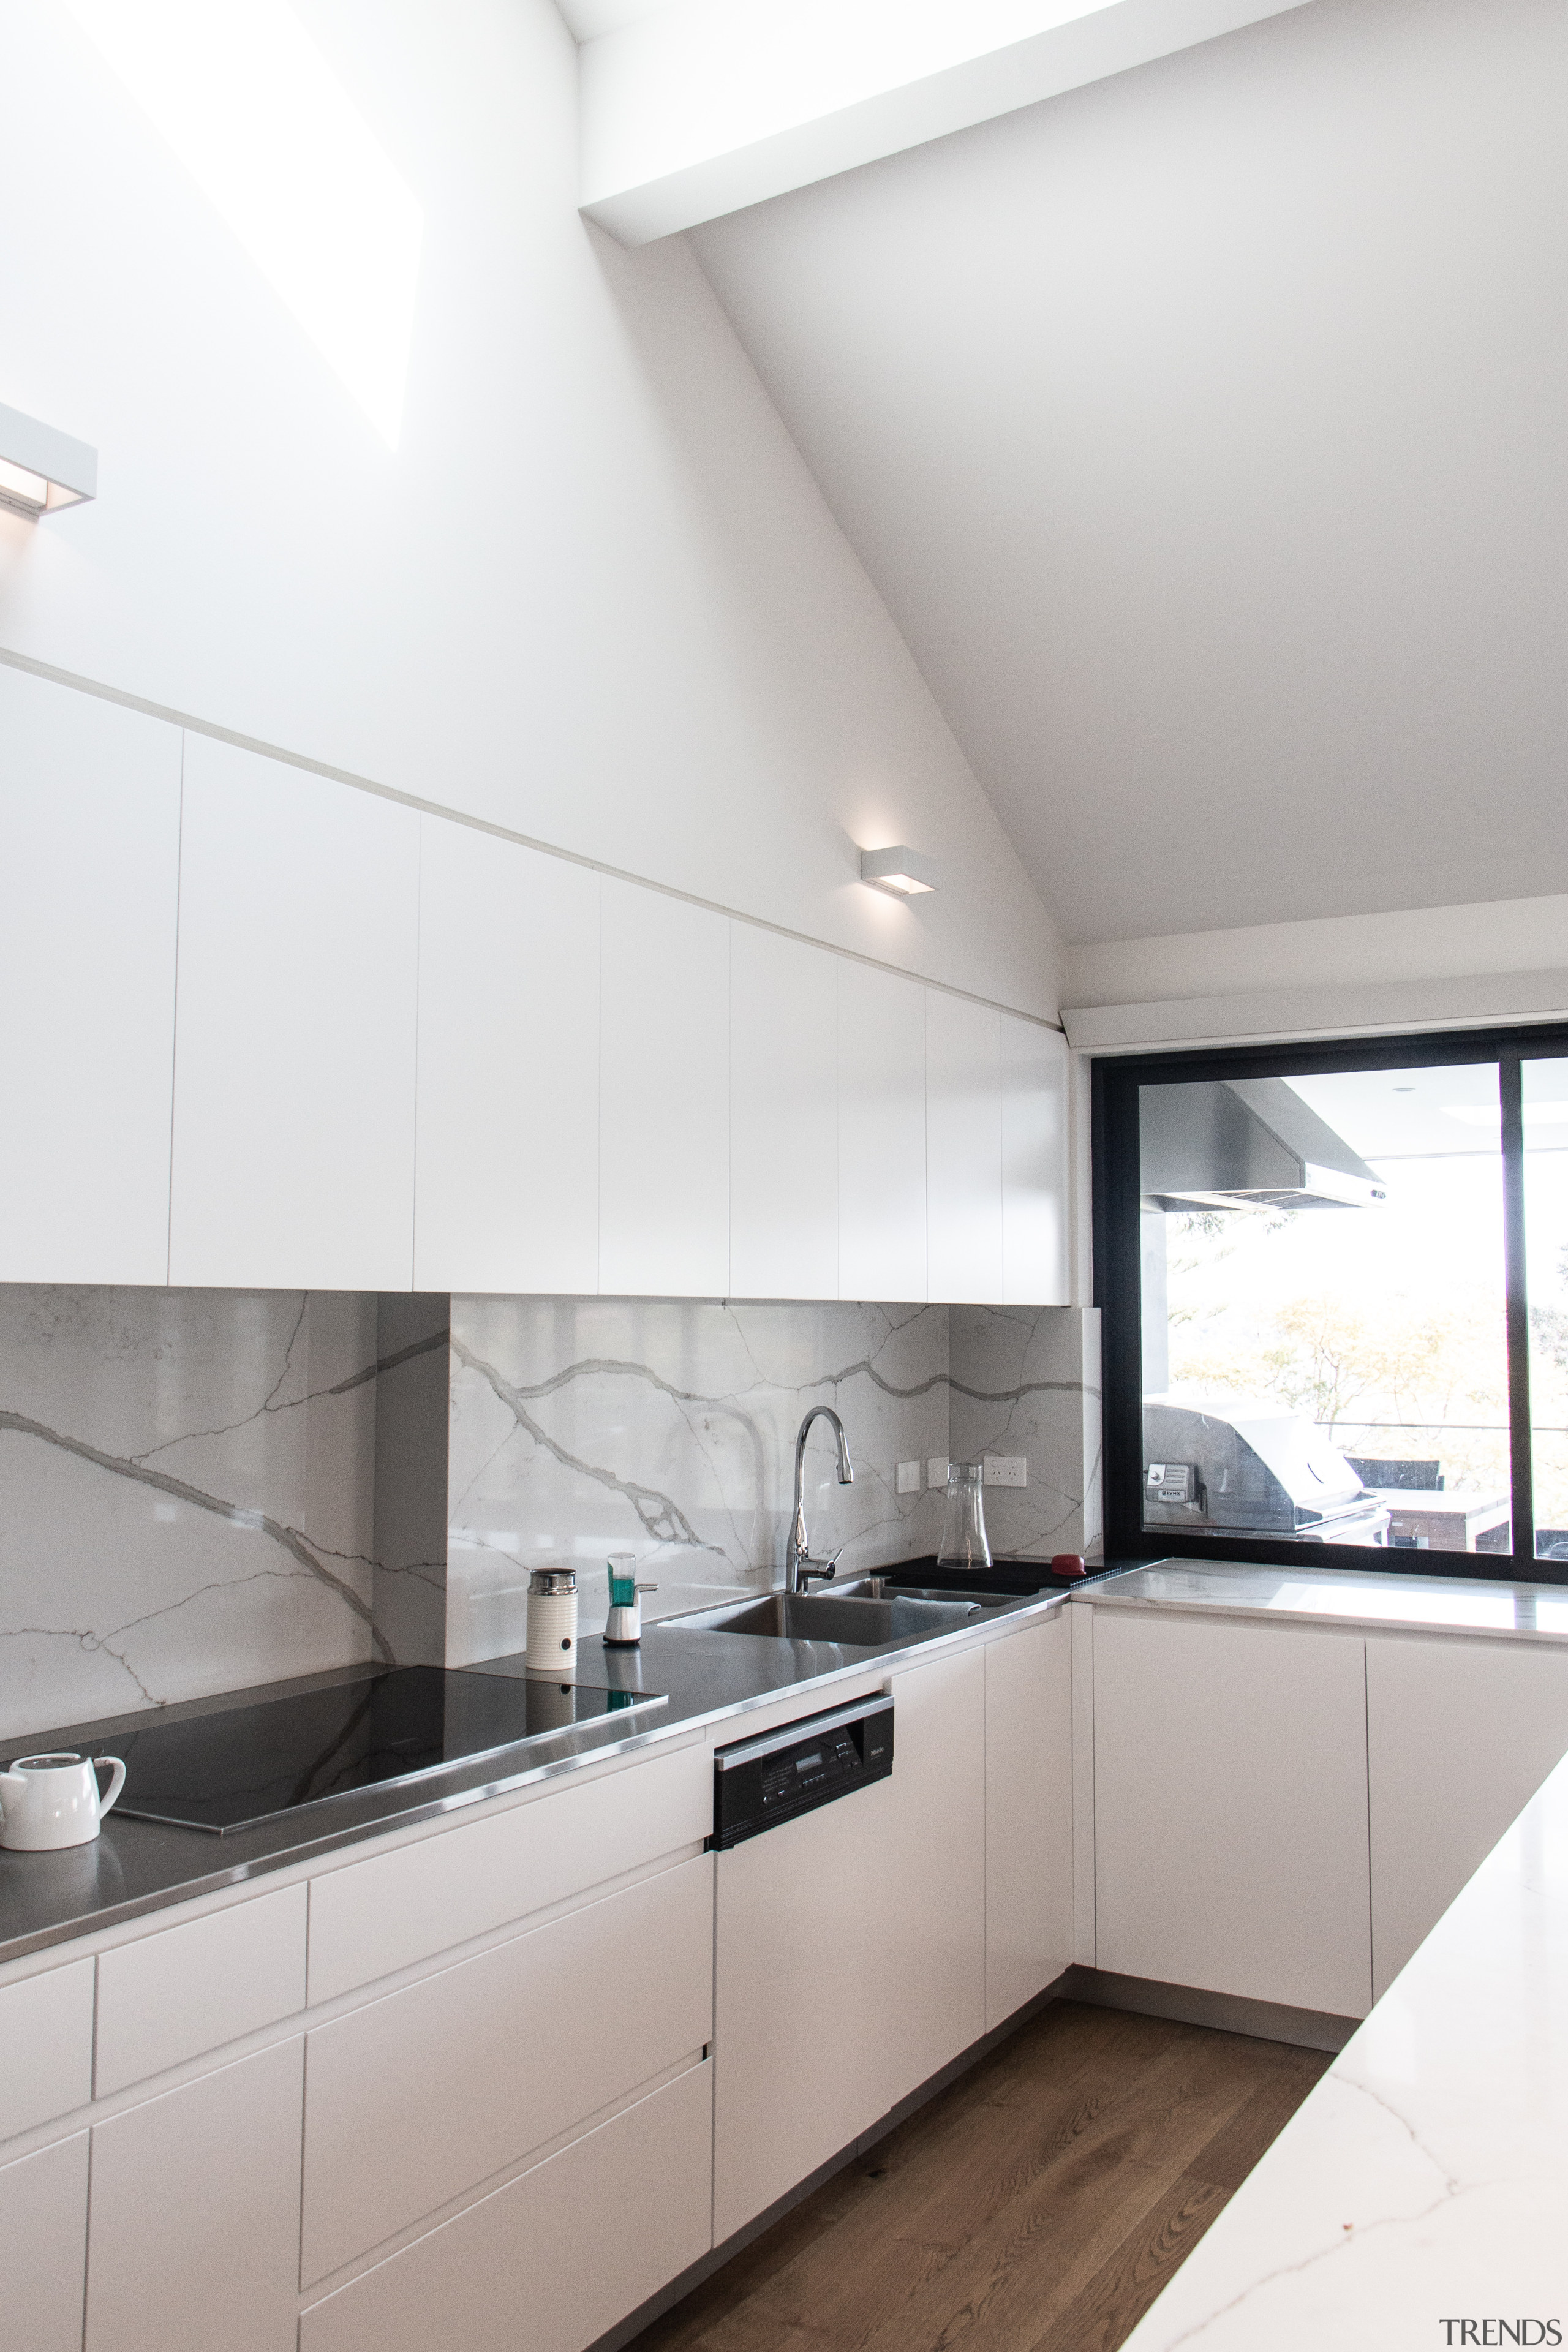 For this renovation, the island bench, splashback and white